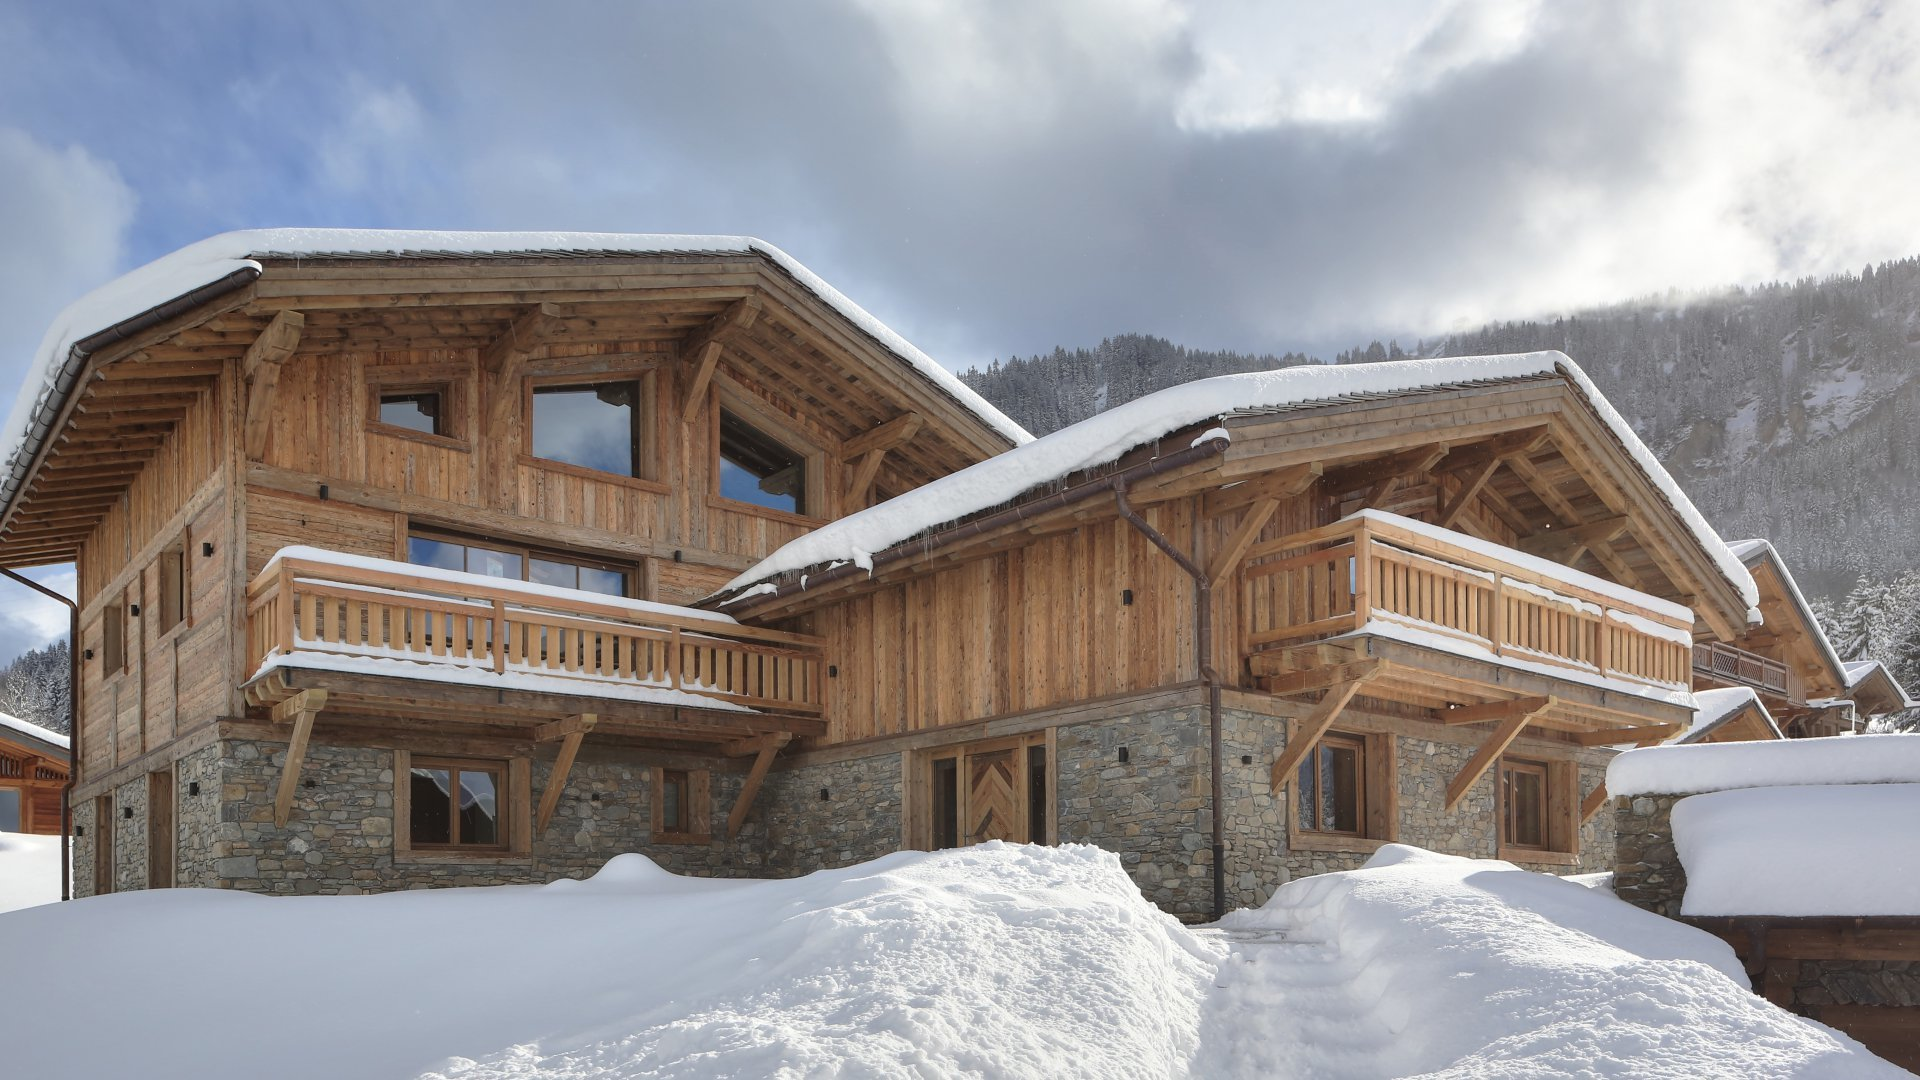 Megeve accommodation chalets for rent in Megeve apartments to rent in Megeve holiday homes to rent in Megeve